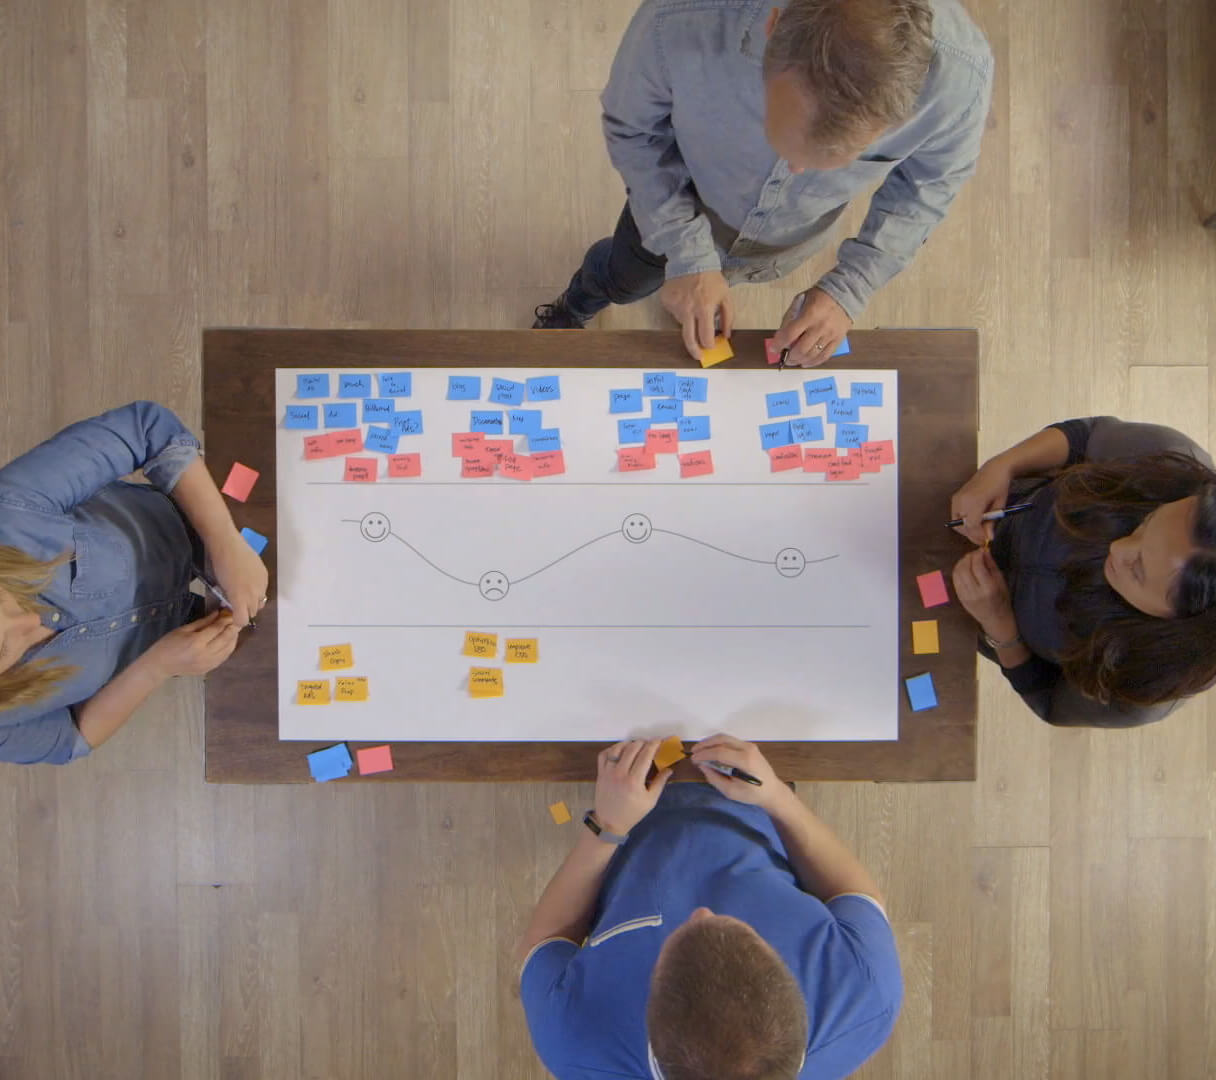 Customer journey mapping. Here's how to do it.